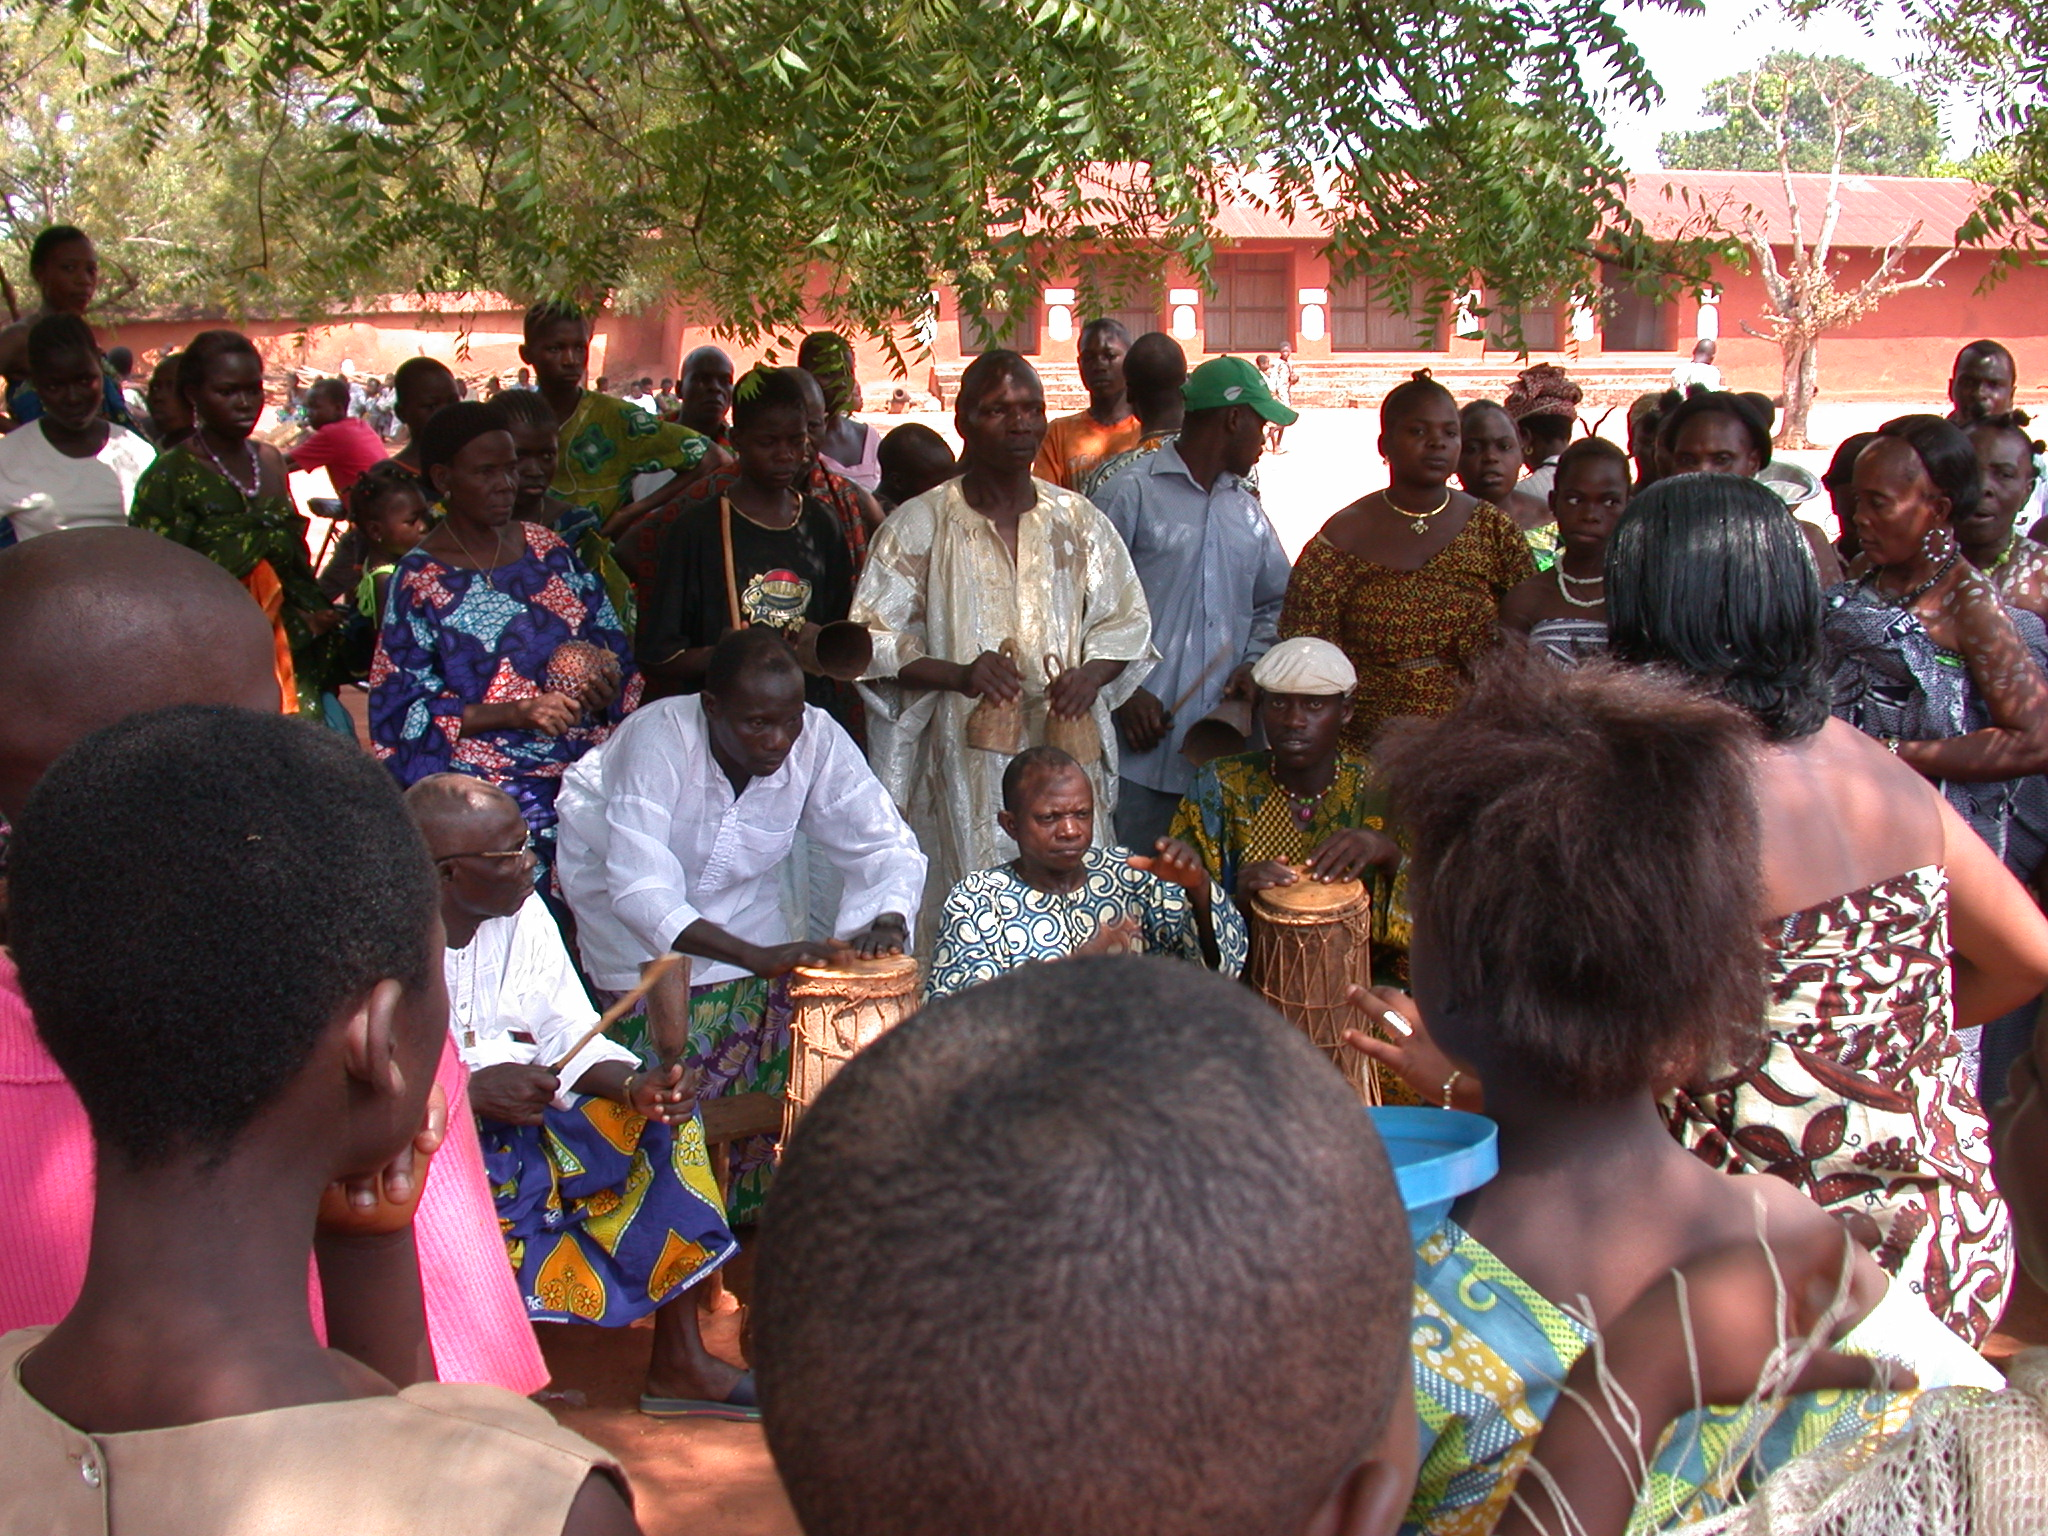 Drummers at Danxome Festival Celebrations at Palace Grounds, Abomey History Museum, Abomey, Benin